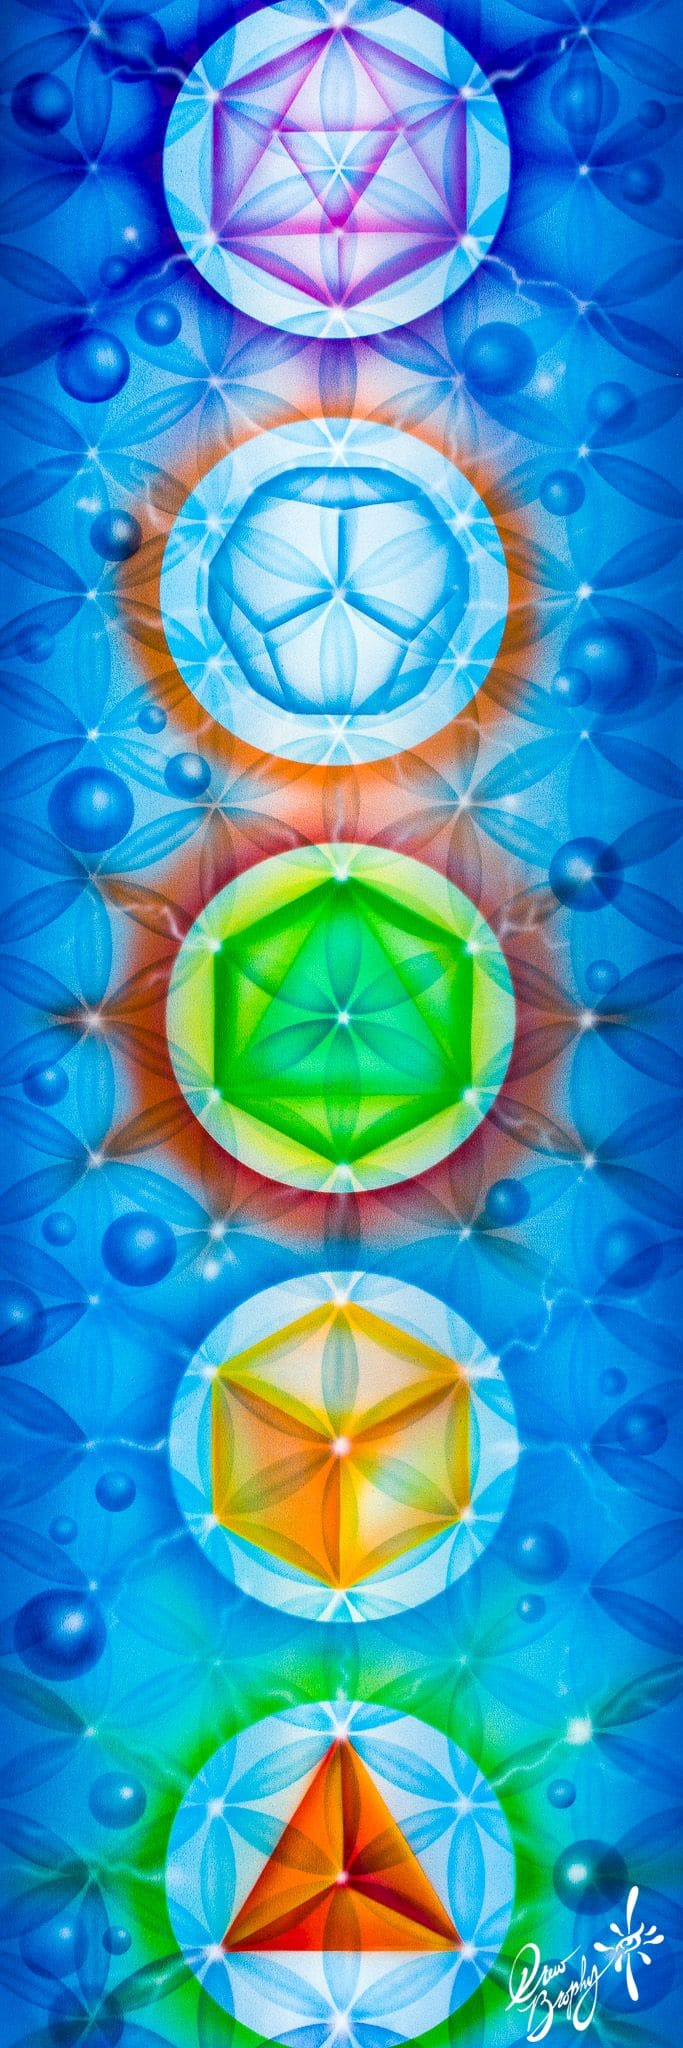 PlatonicSolids lowres ByDrew Brophy 2015